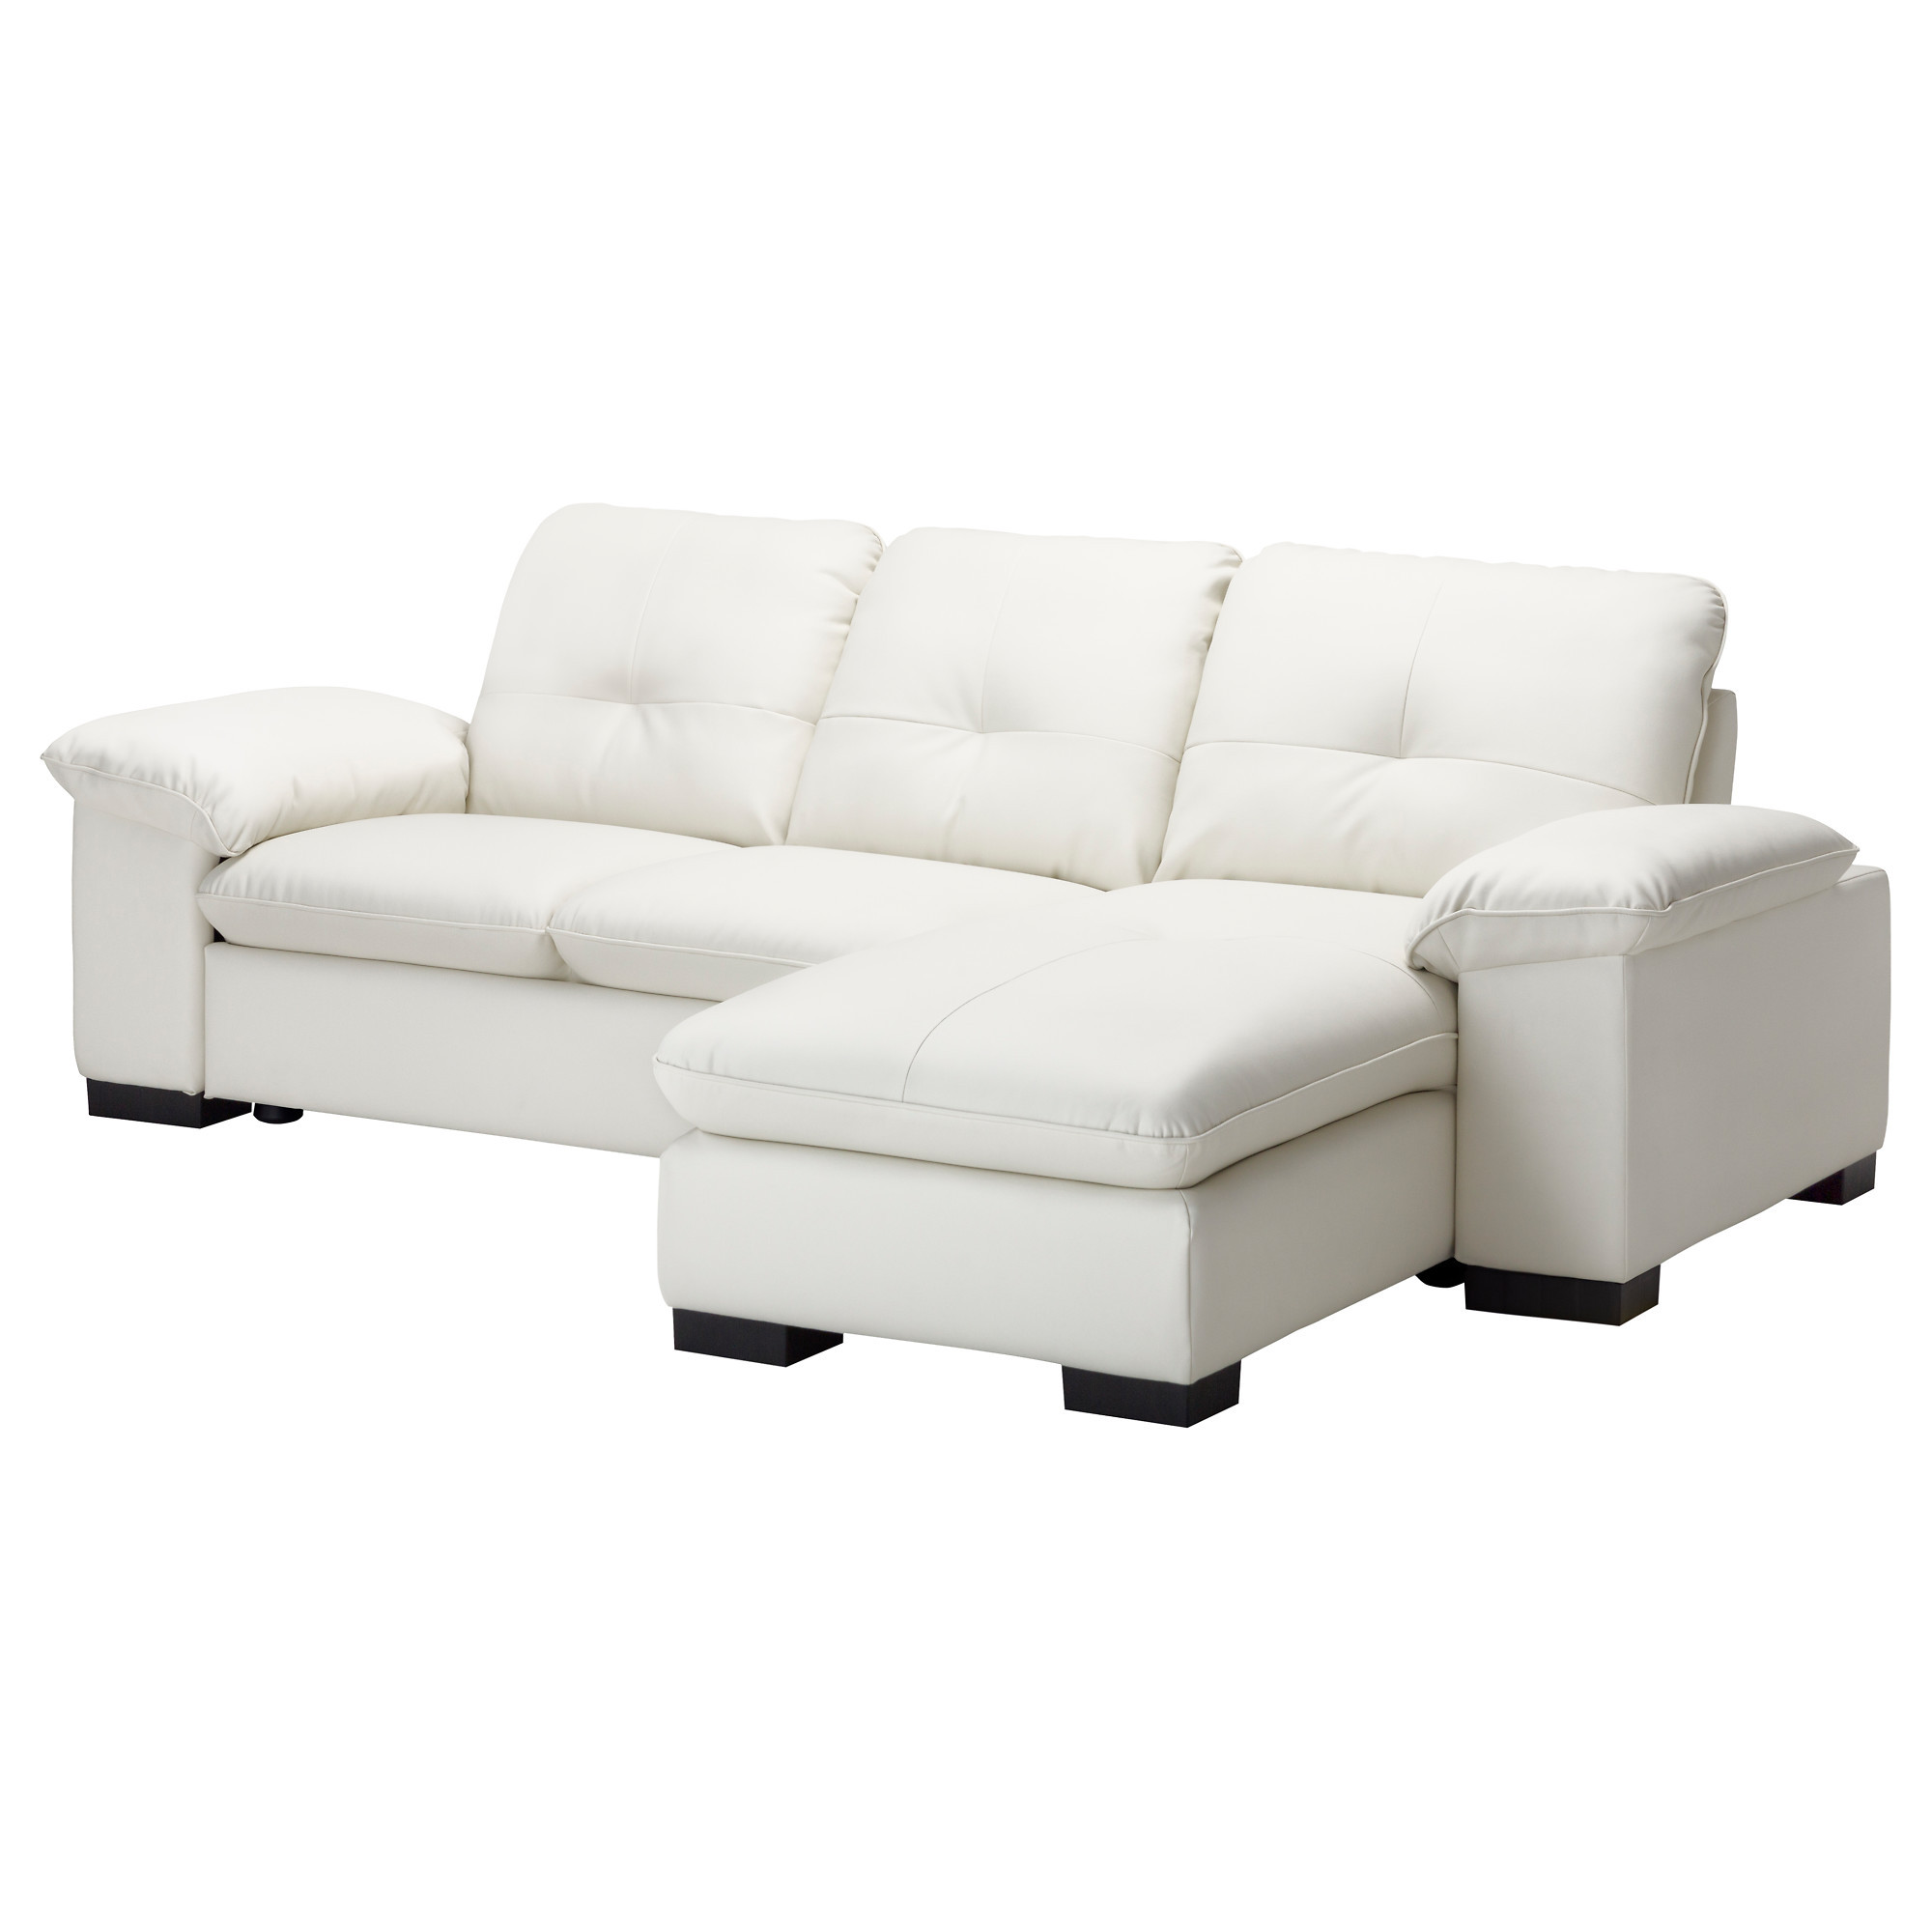 Best ideas about Ikea Sectional Sofa . Save or Pin Sofa fortable Ikea Sectional Sofa In A Range Styles Now.